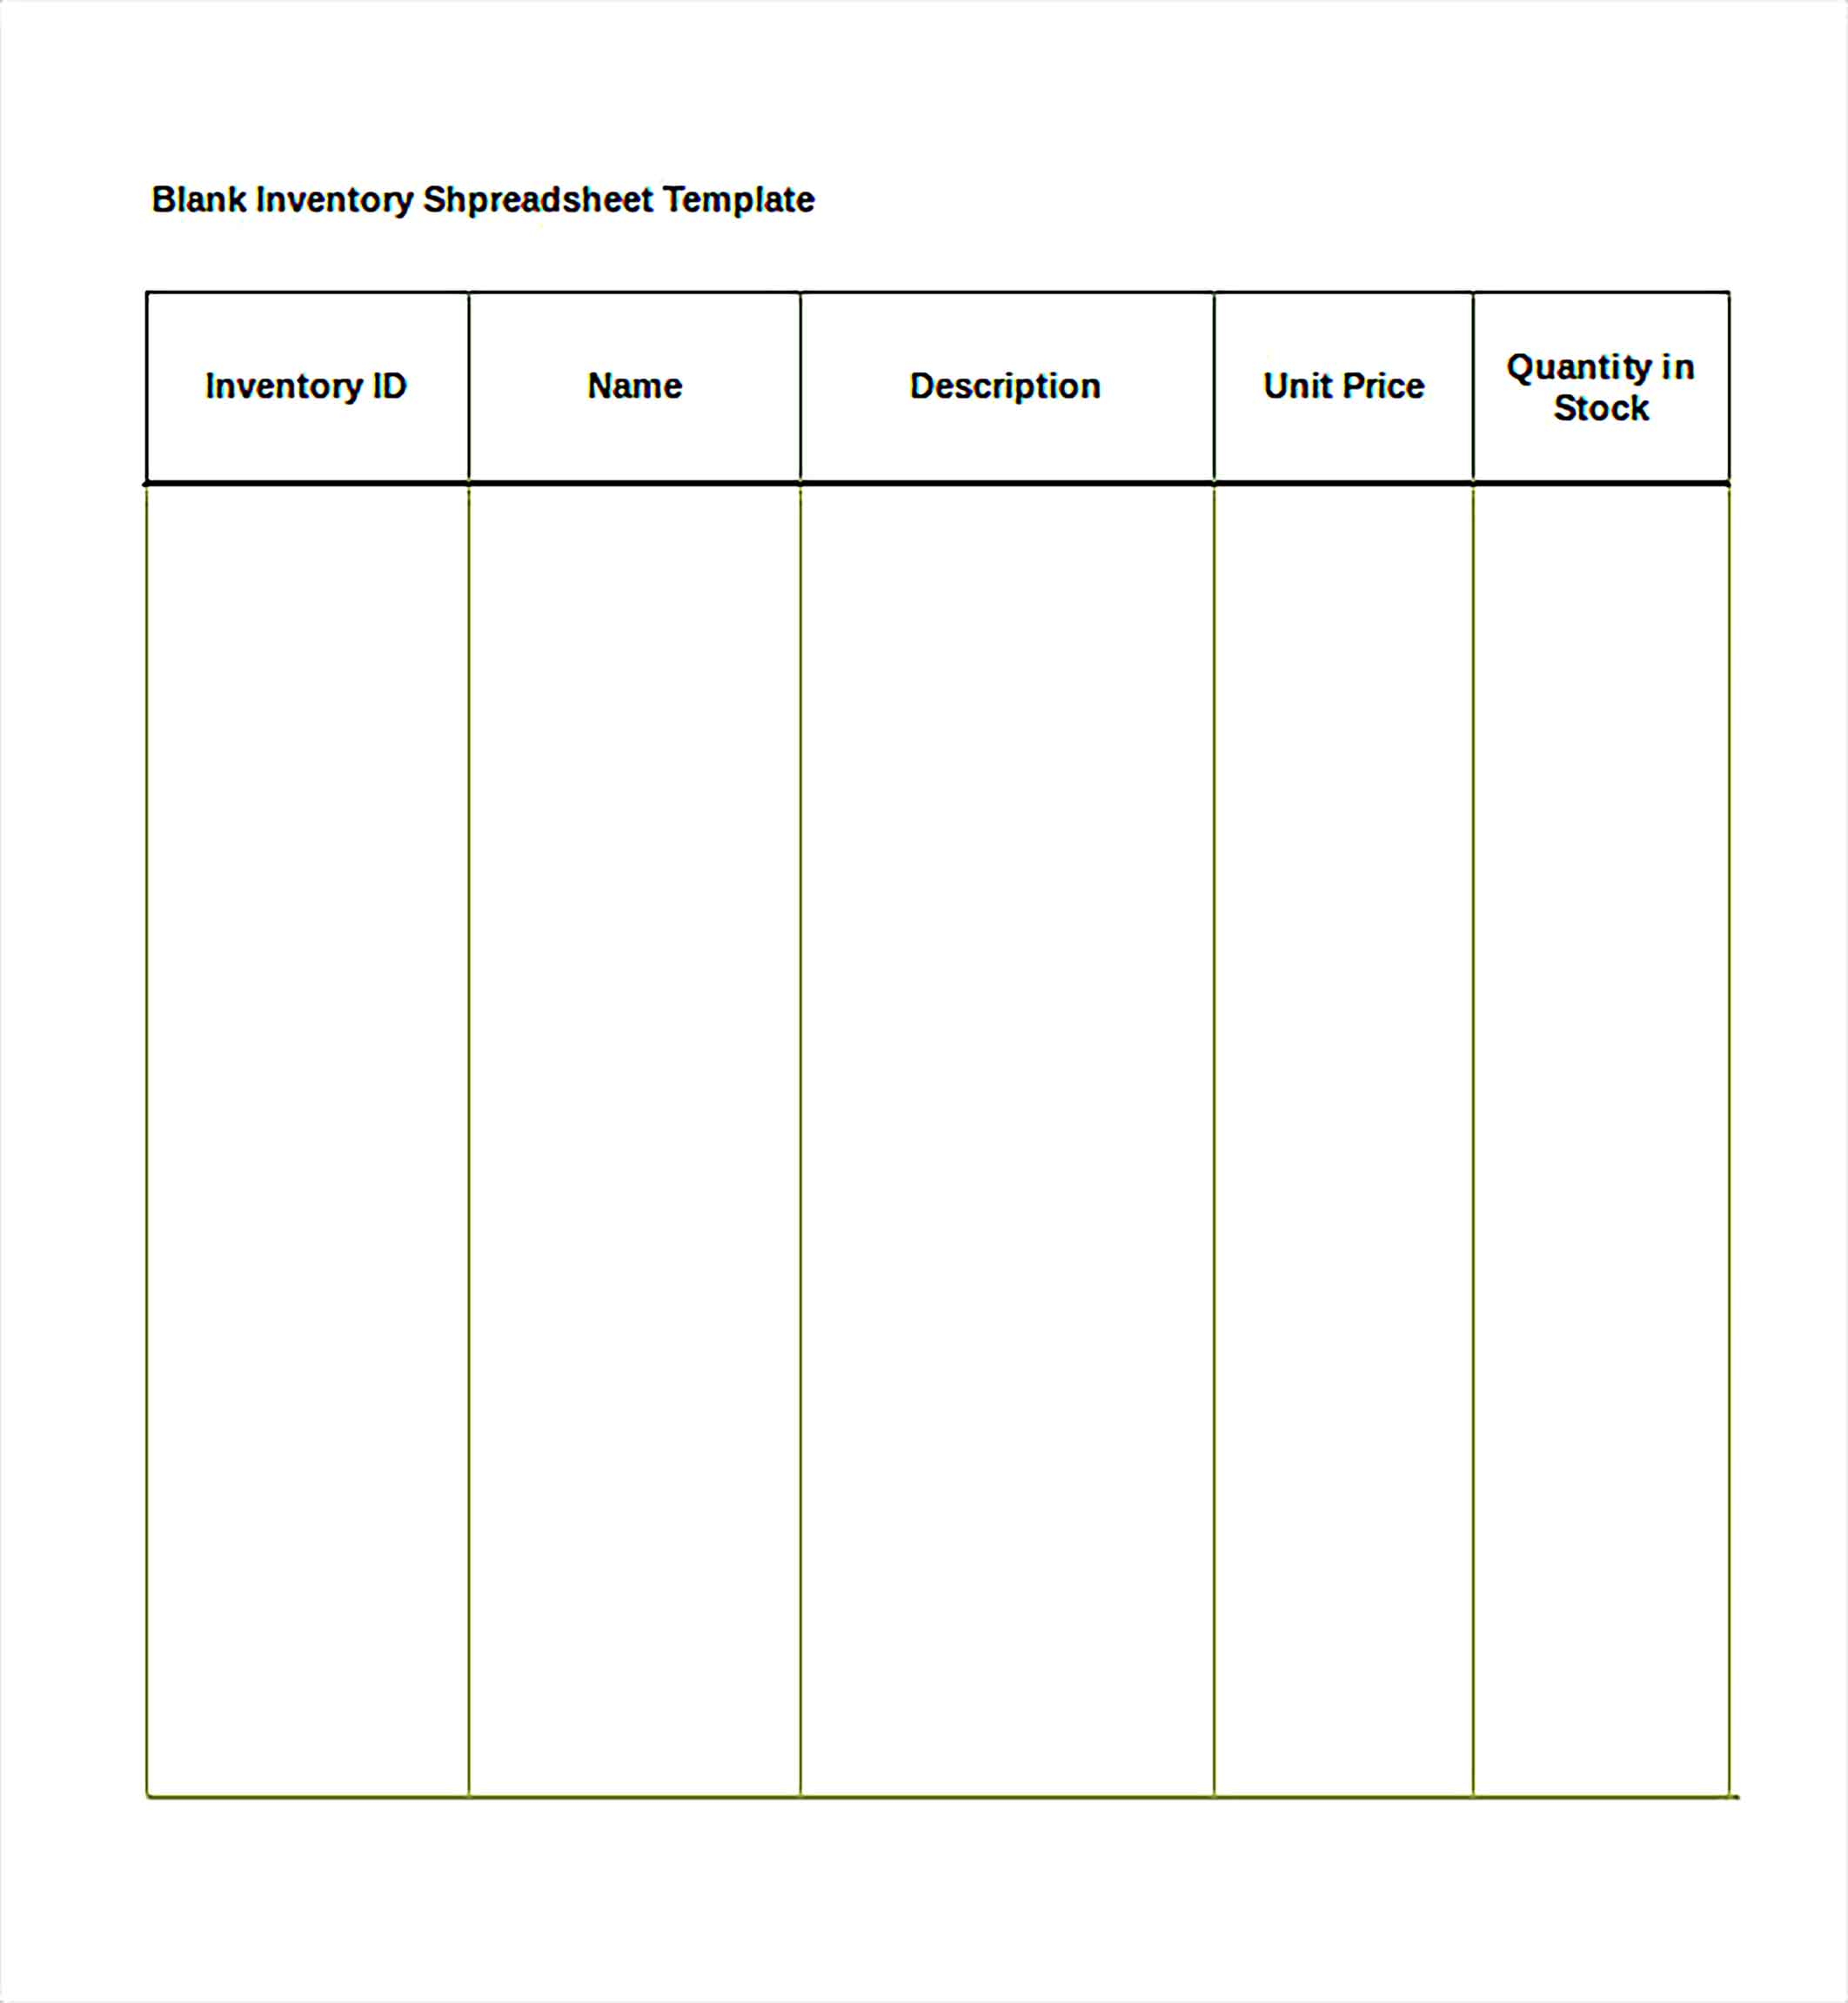 Blank Inventory Spreadsheet Excel Template Free Download